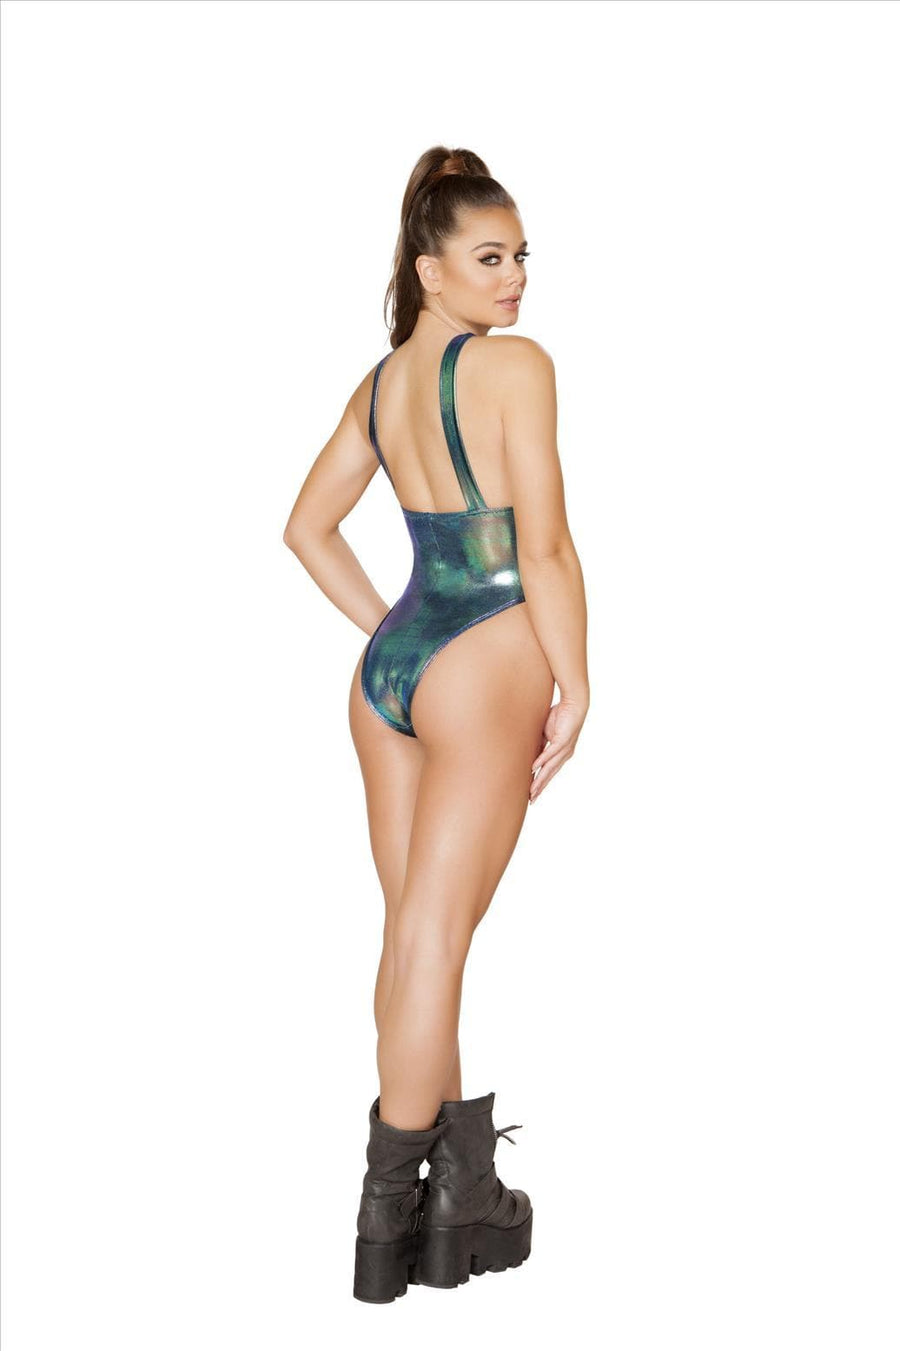 Roma S/M / Blue Iridescent Blue Overall w/ Front Pocket Detail One Piece Bodysuit SHC-3550-BLUE-S/M-R Iridescent Blue Overall w/ Front Pocket Detail One Piece Swimsuit (Many Colors Available) Apparel & Accessories > Clothing > One Pieces > Jumpsuits & Rompers